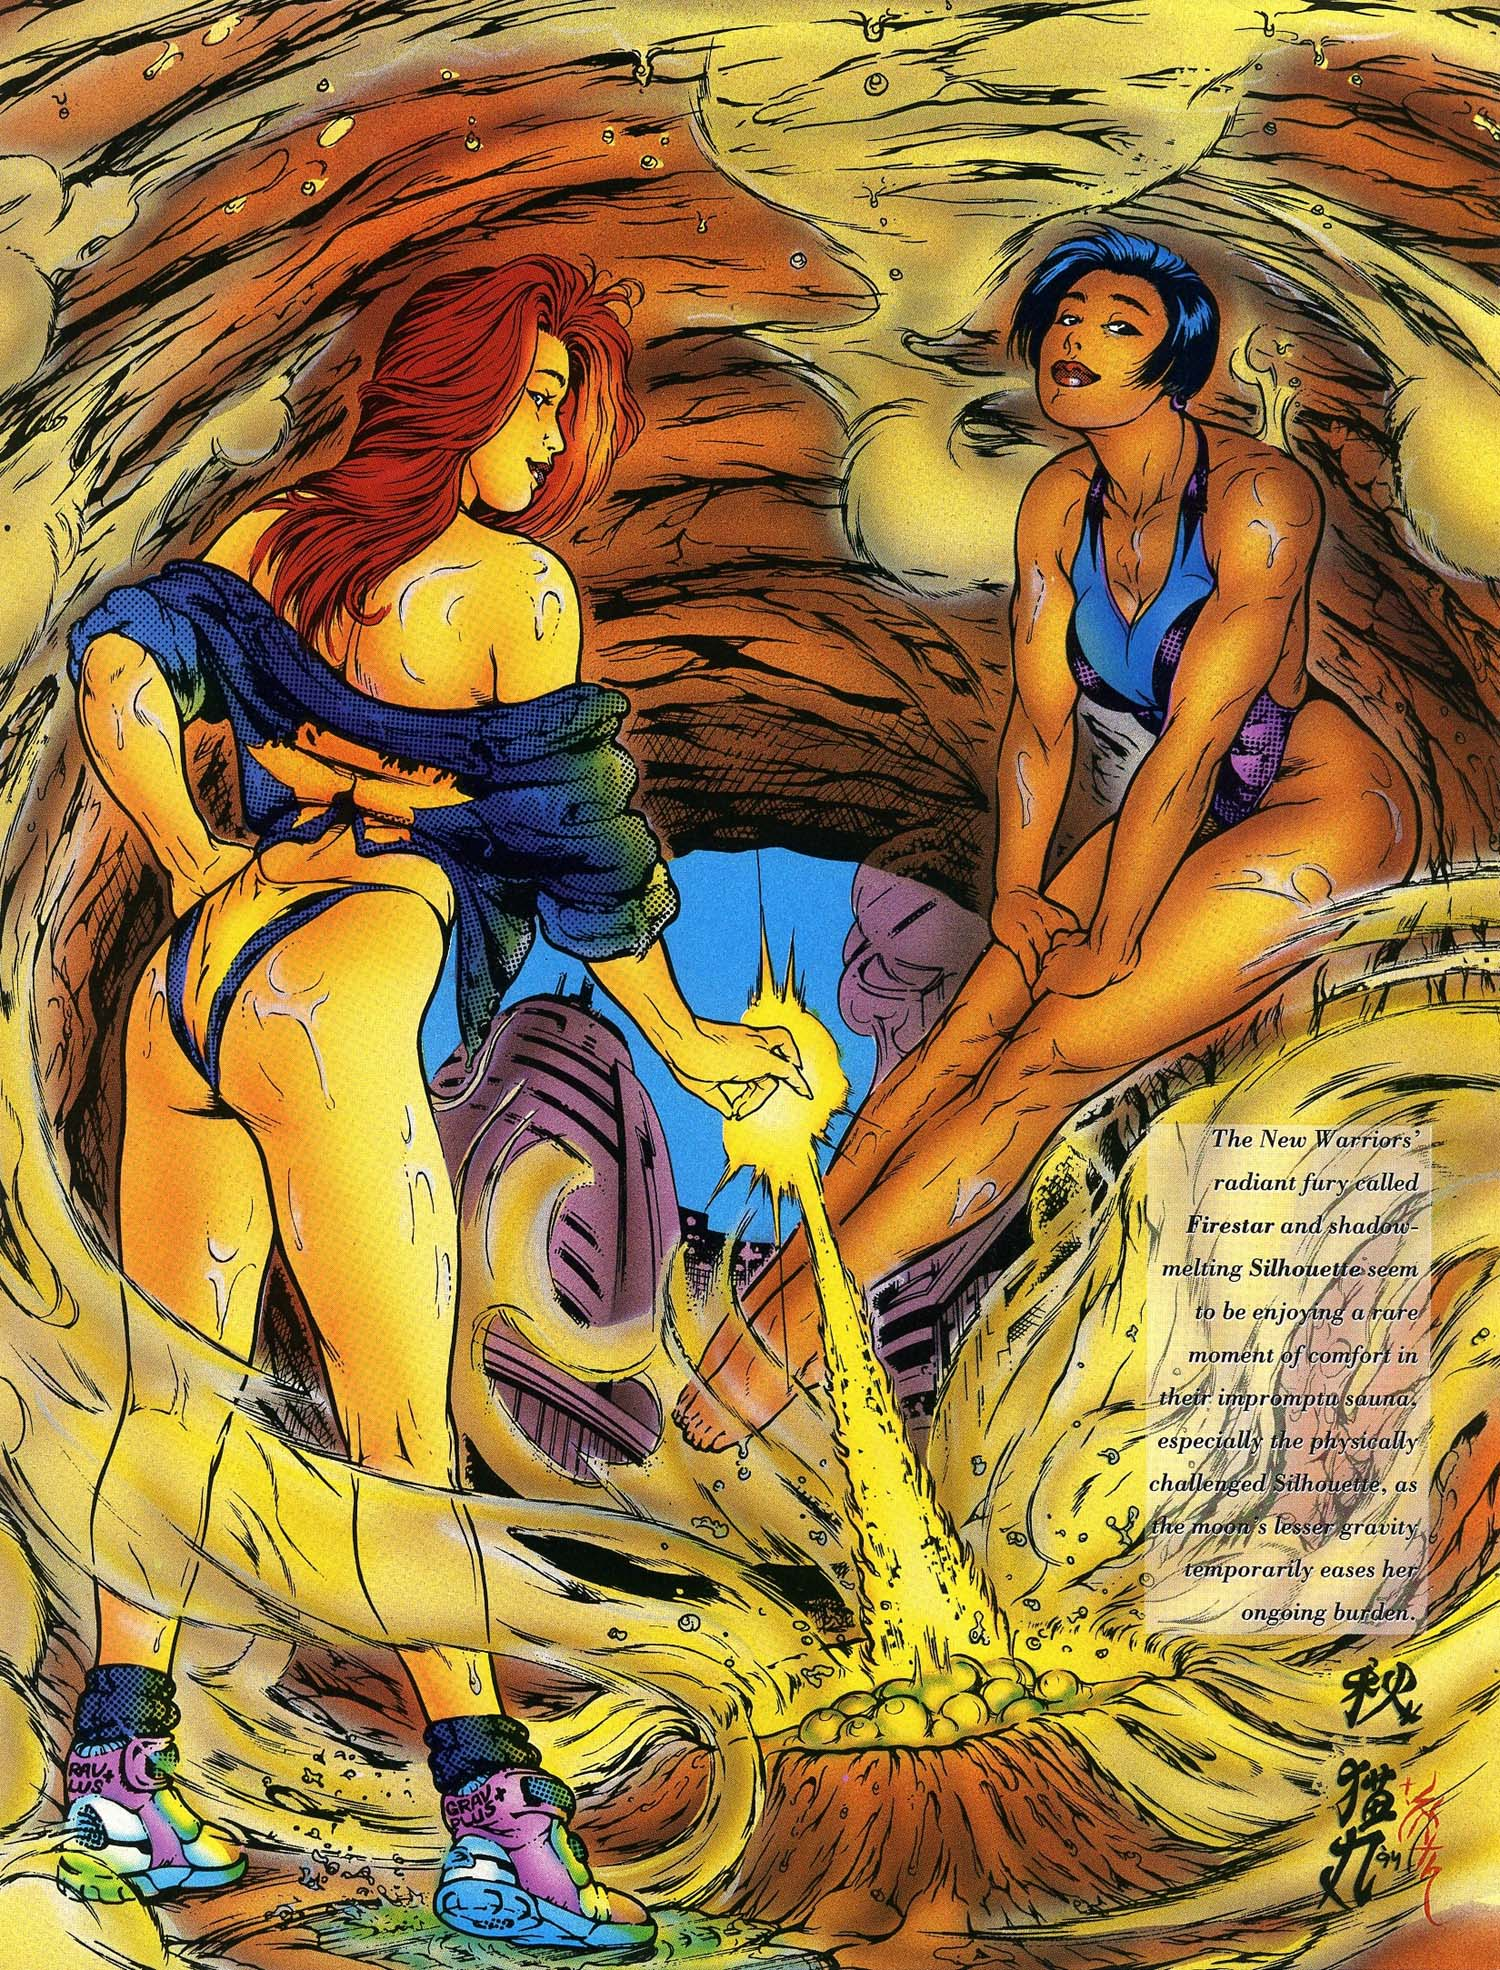 Angelica Jones (Earth-616) and Silhouette Chord (Earth-616) from Marvel Swimsuit Special Vol 1 3.jpg